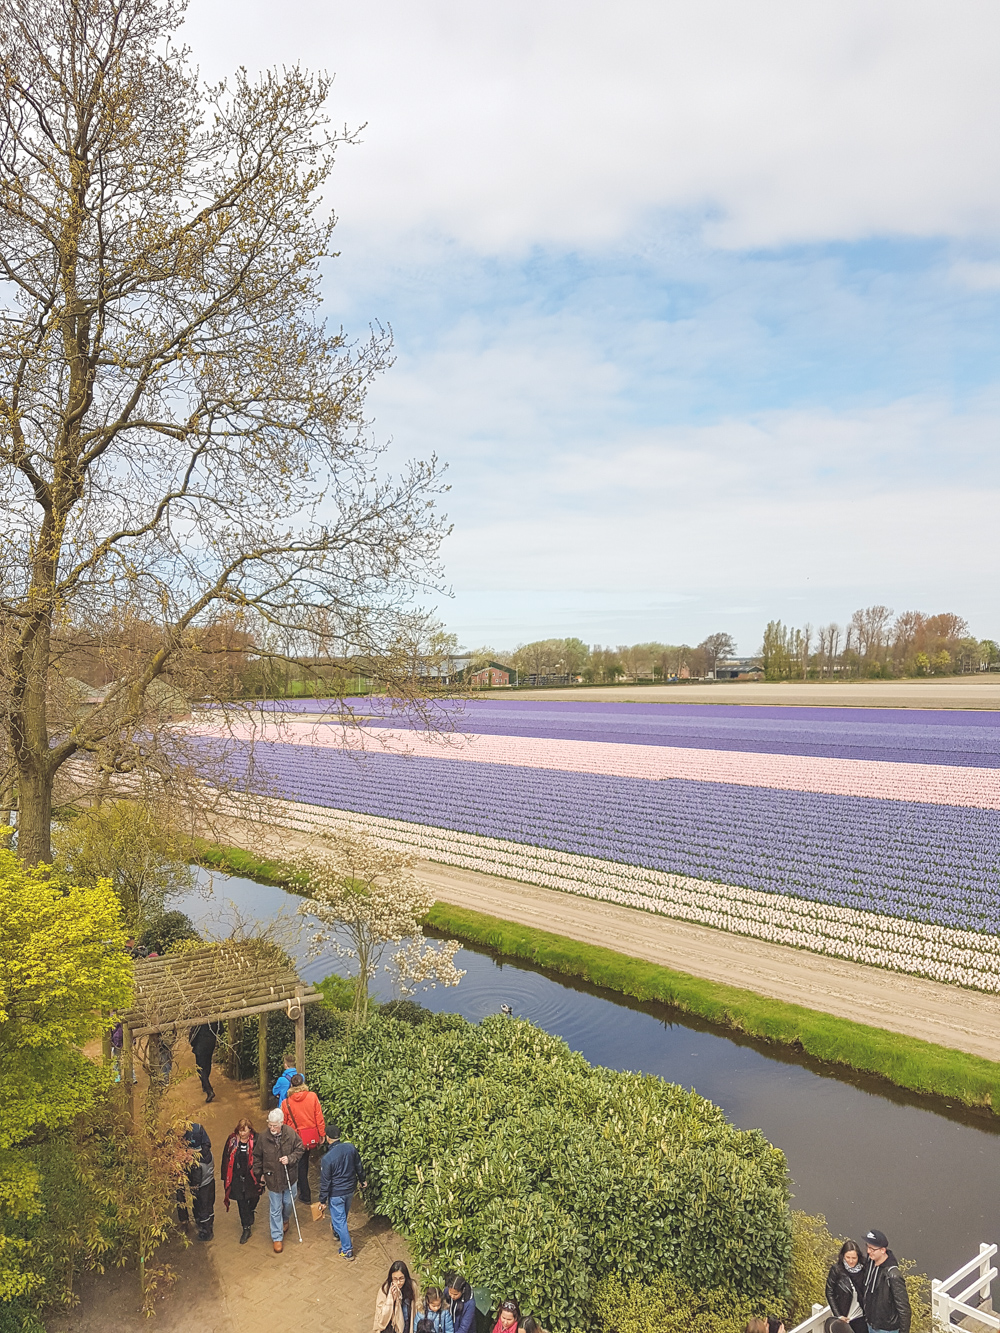 Field of Hyacinths at Keukenhof Gardens, Holland